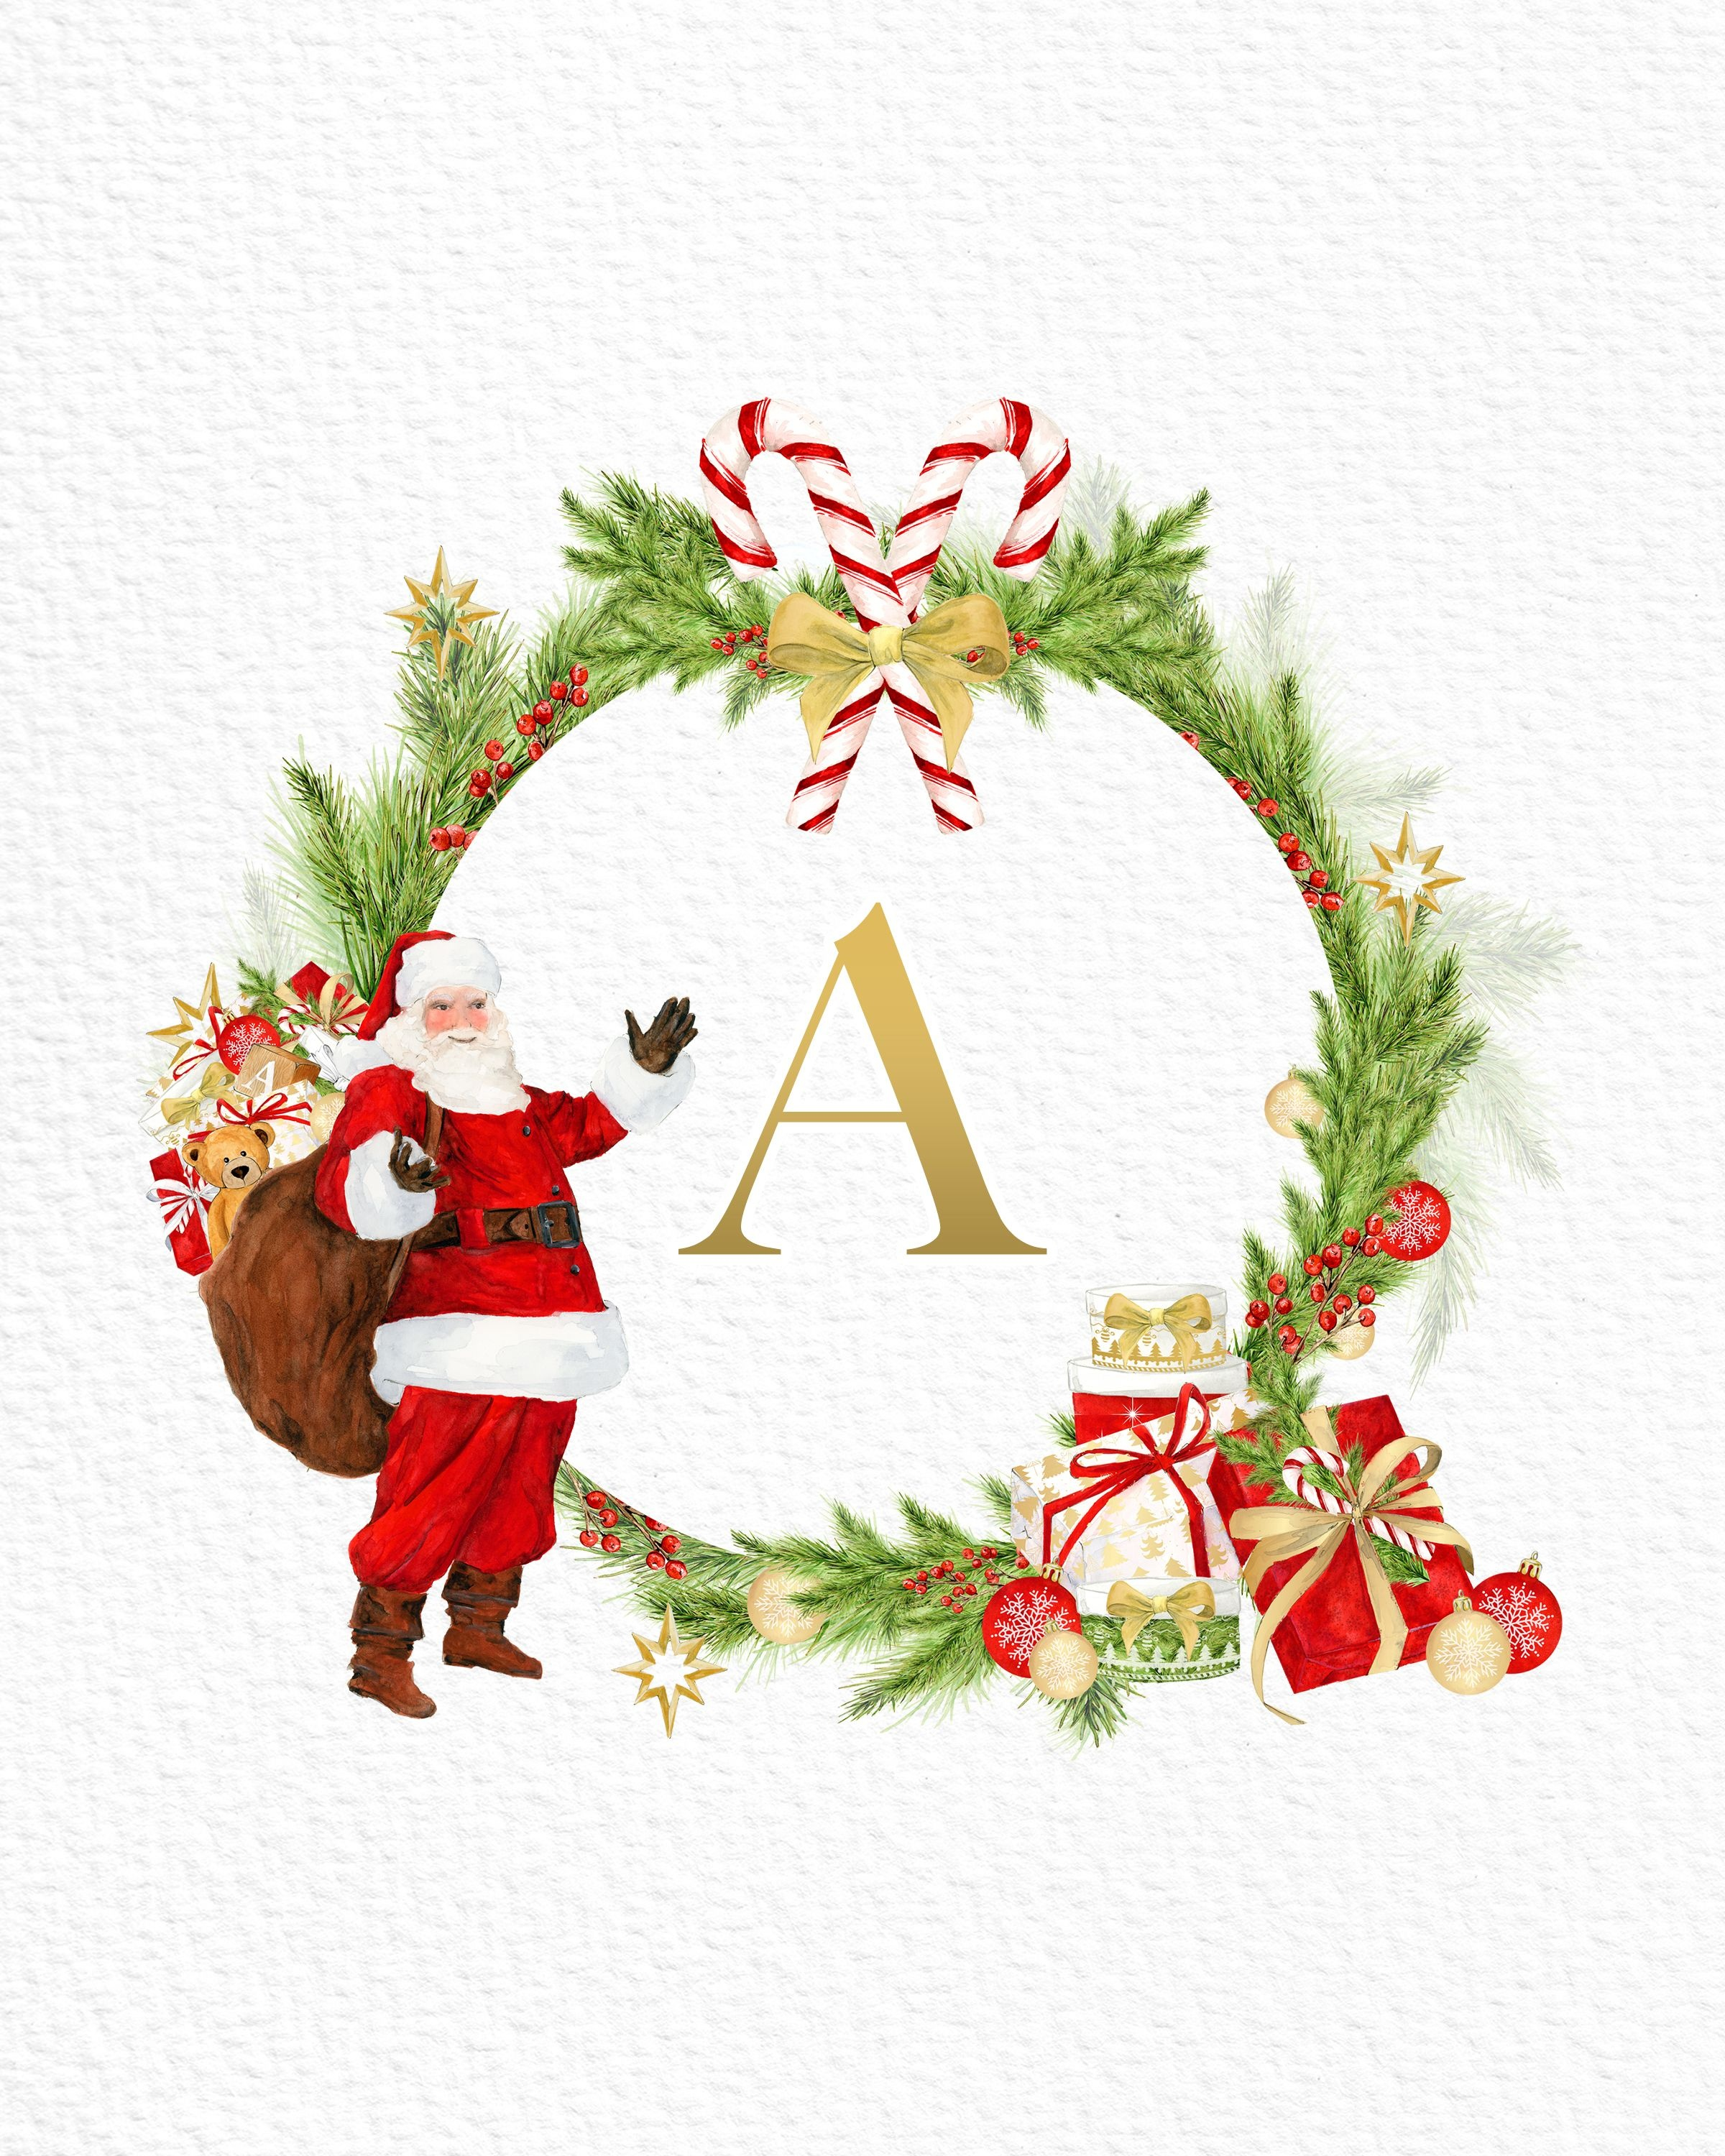 Free Printable Christmas Santa Claus Monograms And More | Christmas - Free Printable Christmas Alphabet